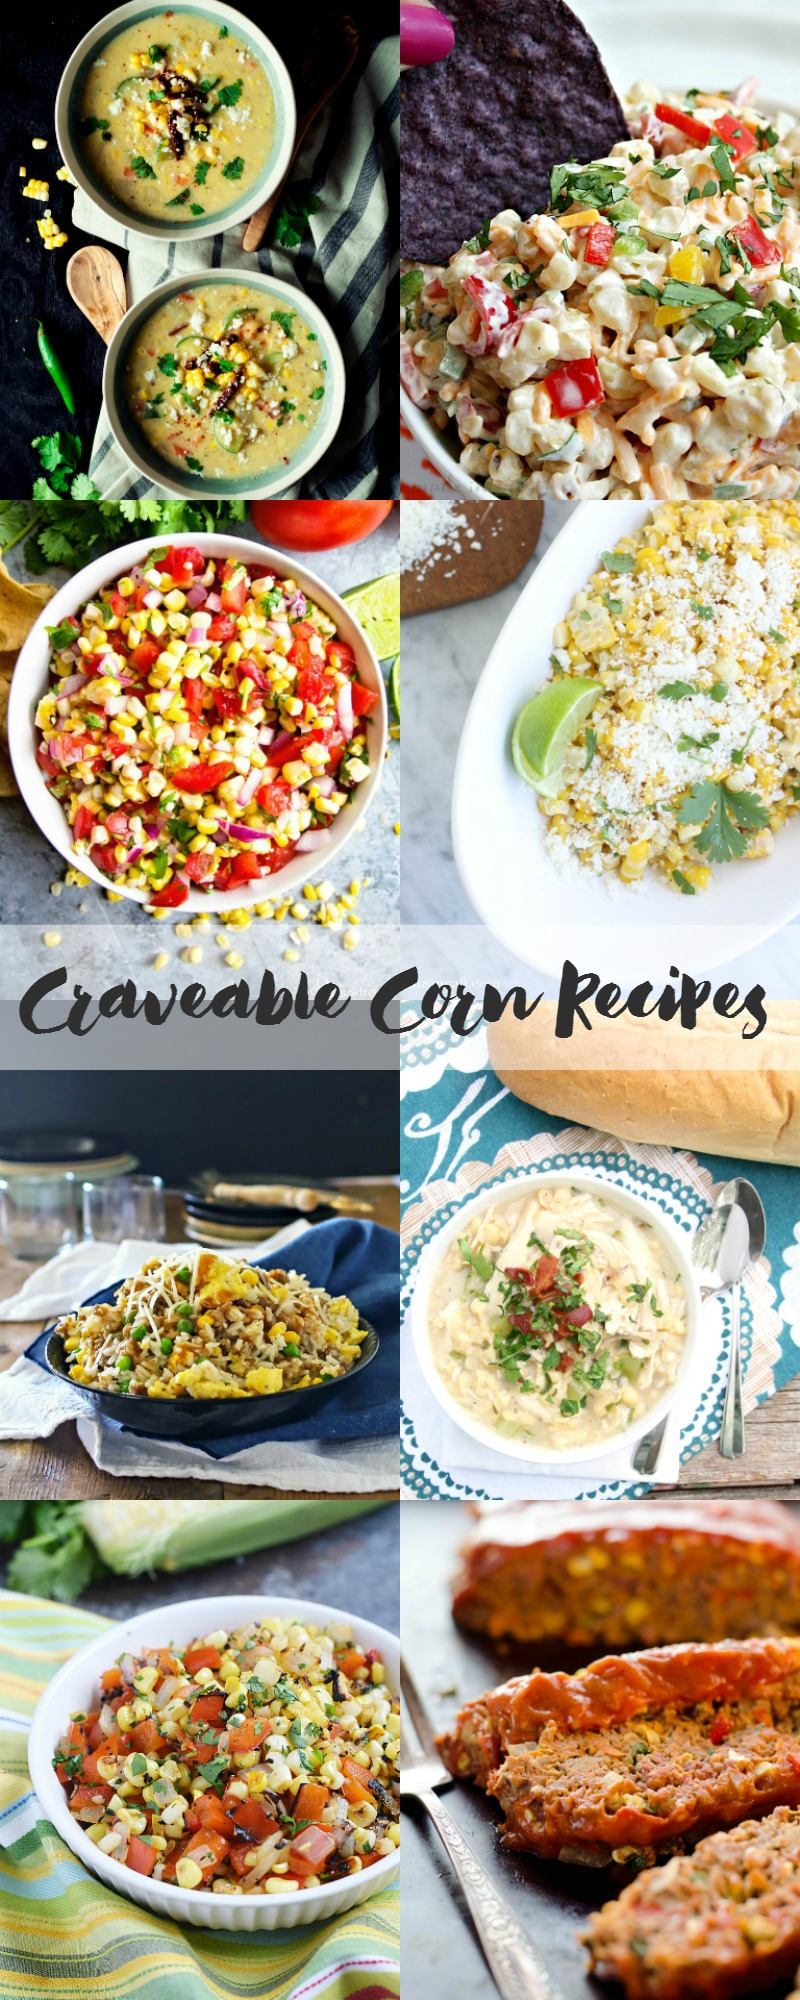 The perfect recipes for all the sweet summer corn!